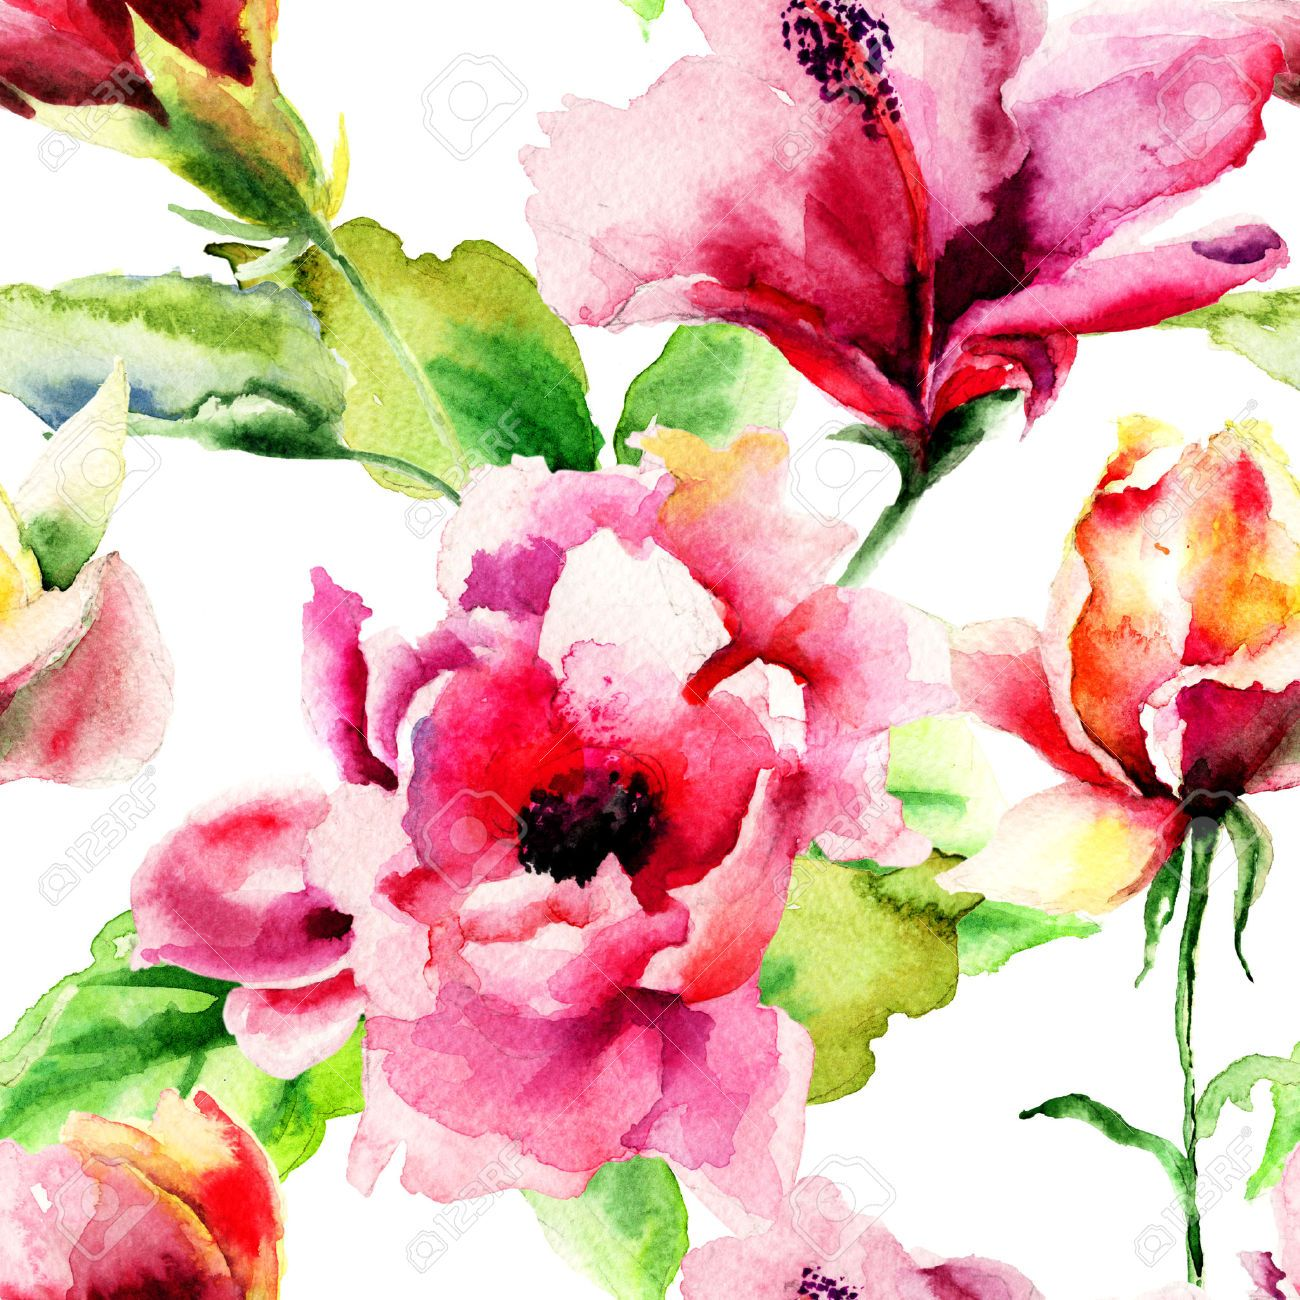 Free illustration watercolor pigment color free image - Le Immagini Di Seamless Pattern With Original Summer Flowers Watercolor Illustration Stock Photo